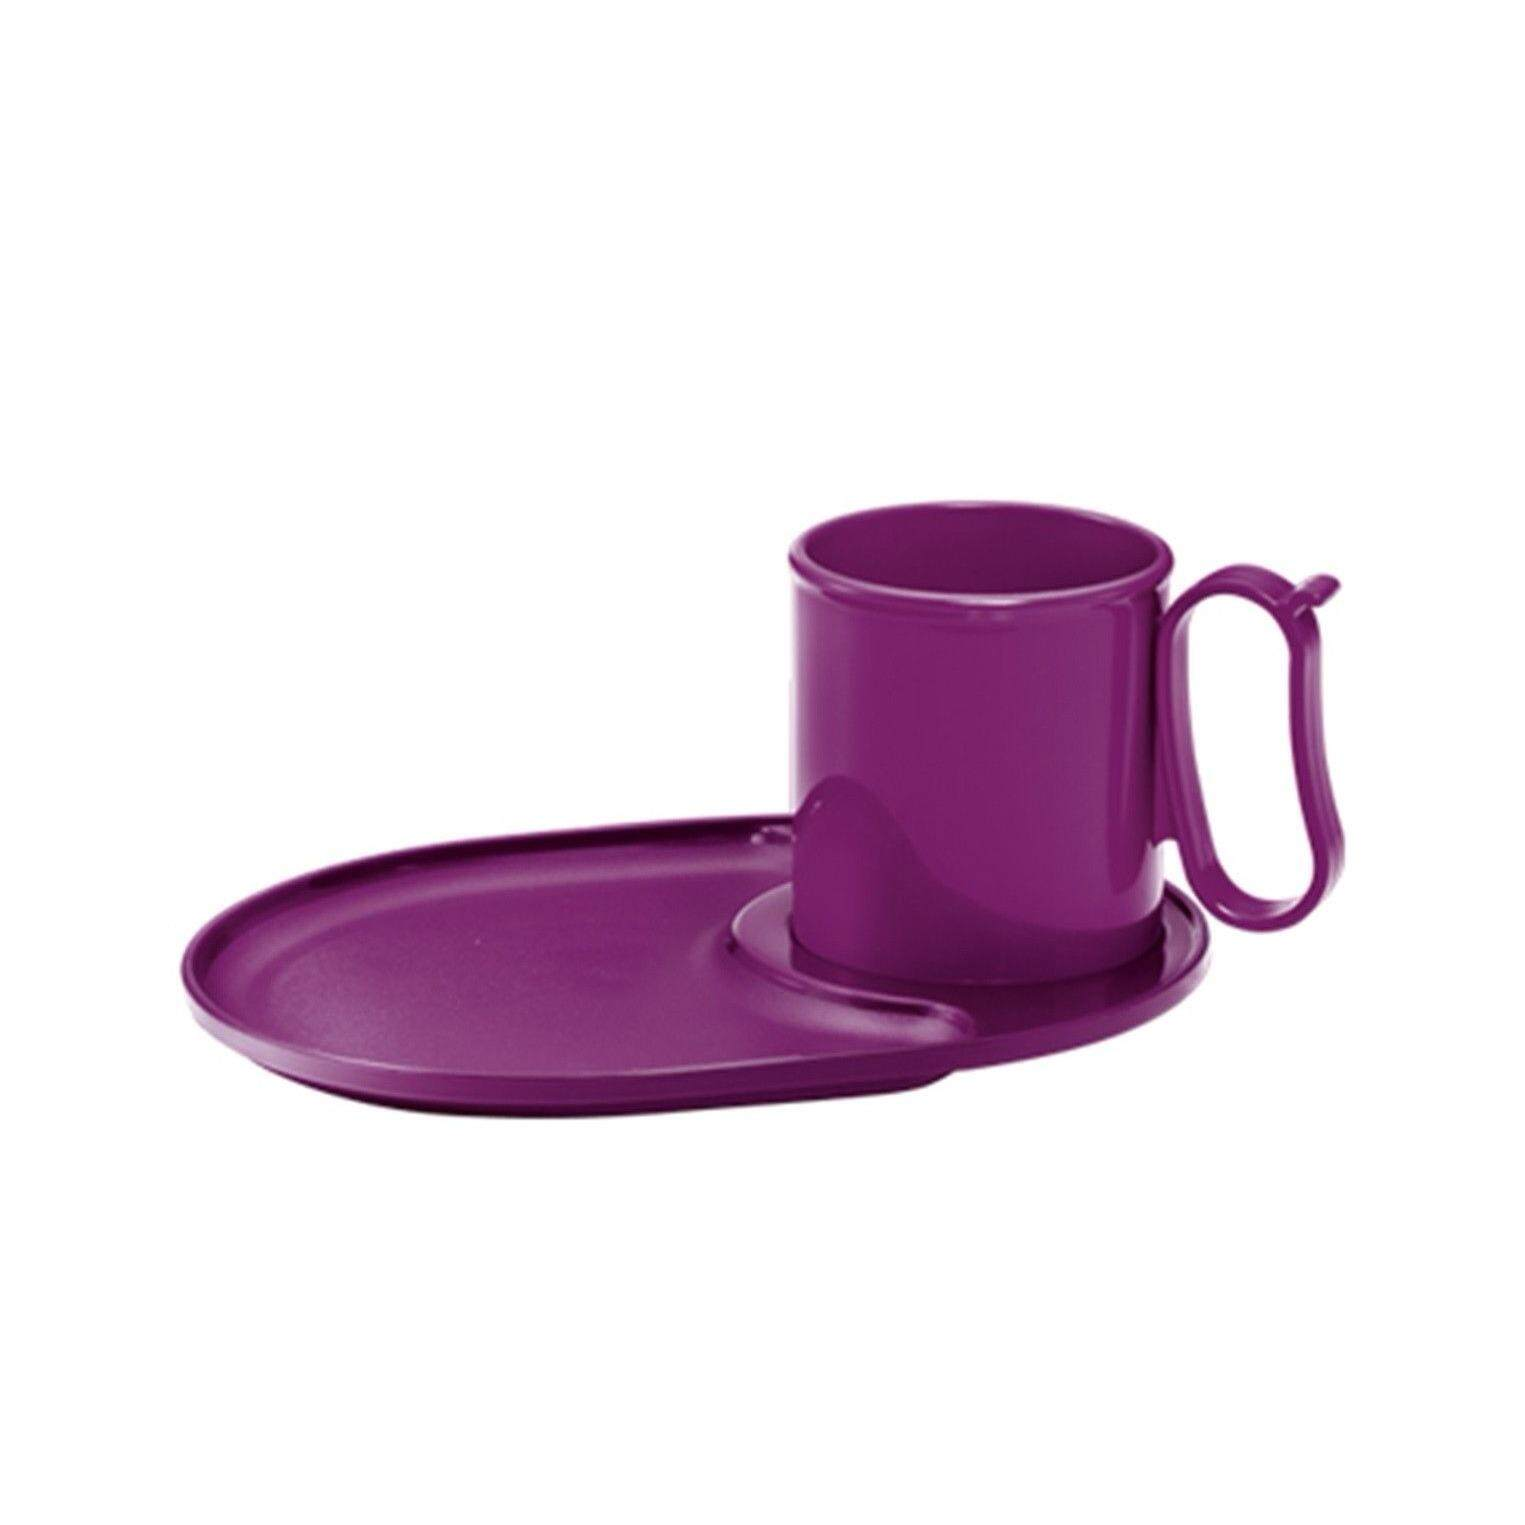 Tupperware Home Jugs Pitchers Price In Malaysia Best Classy Red Collection Tea 4 Two Set Purple